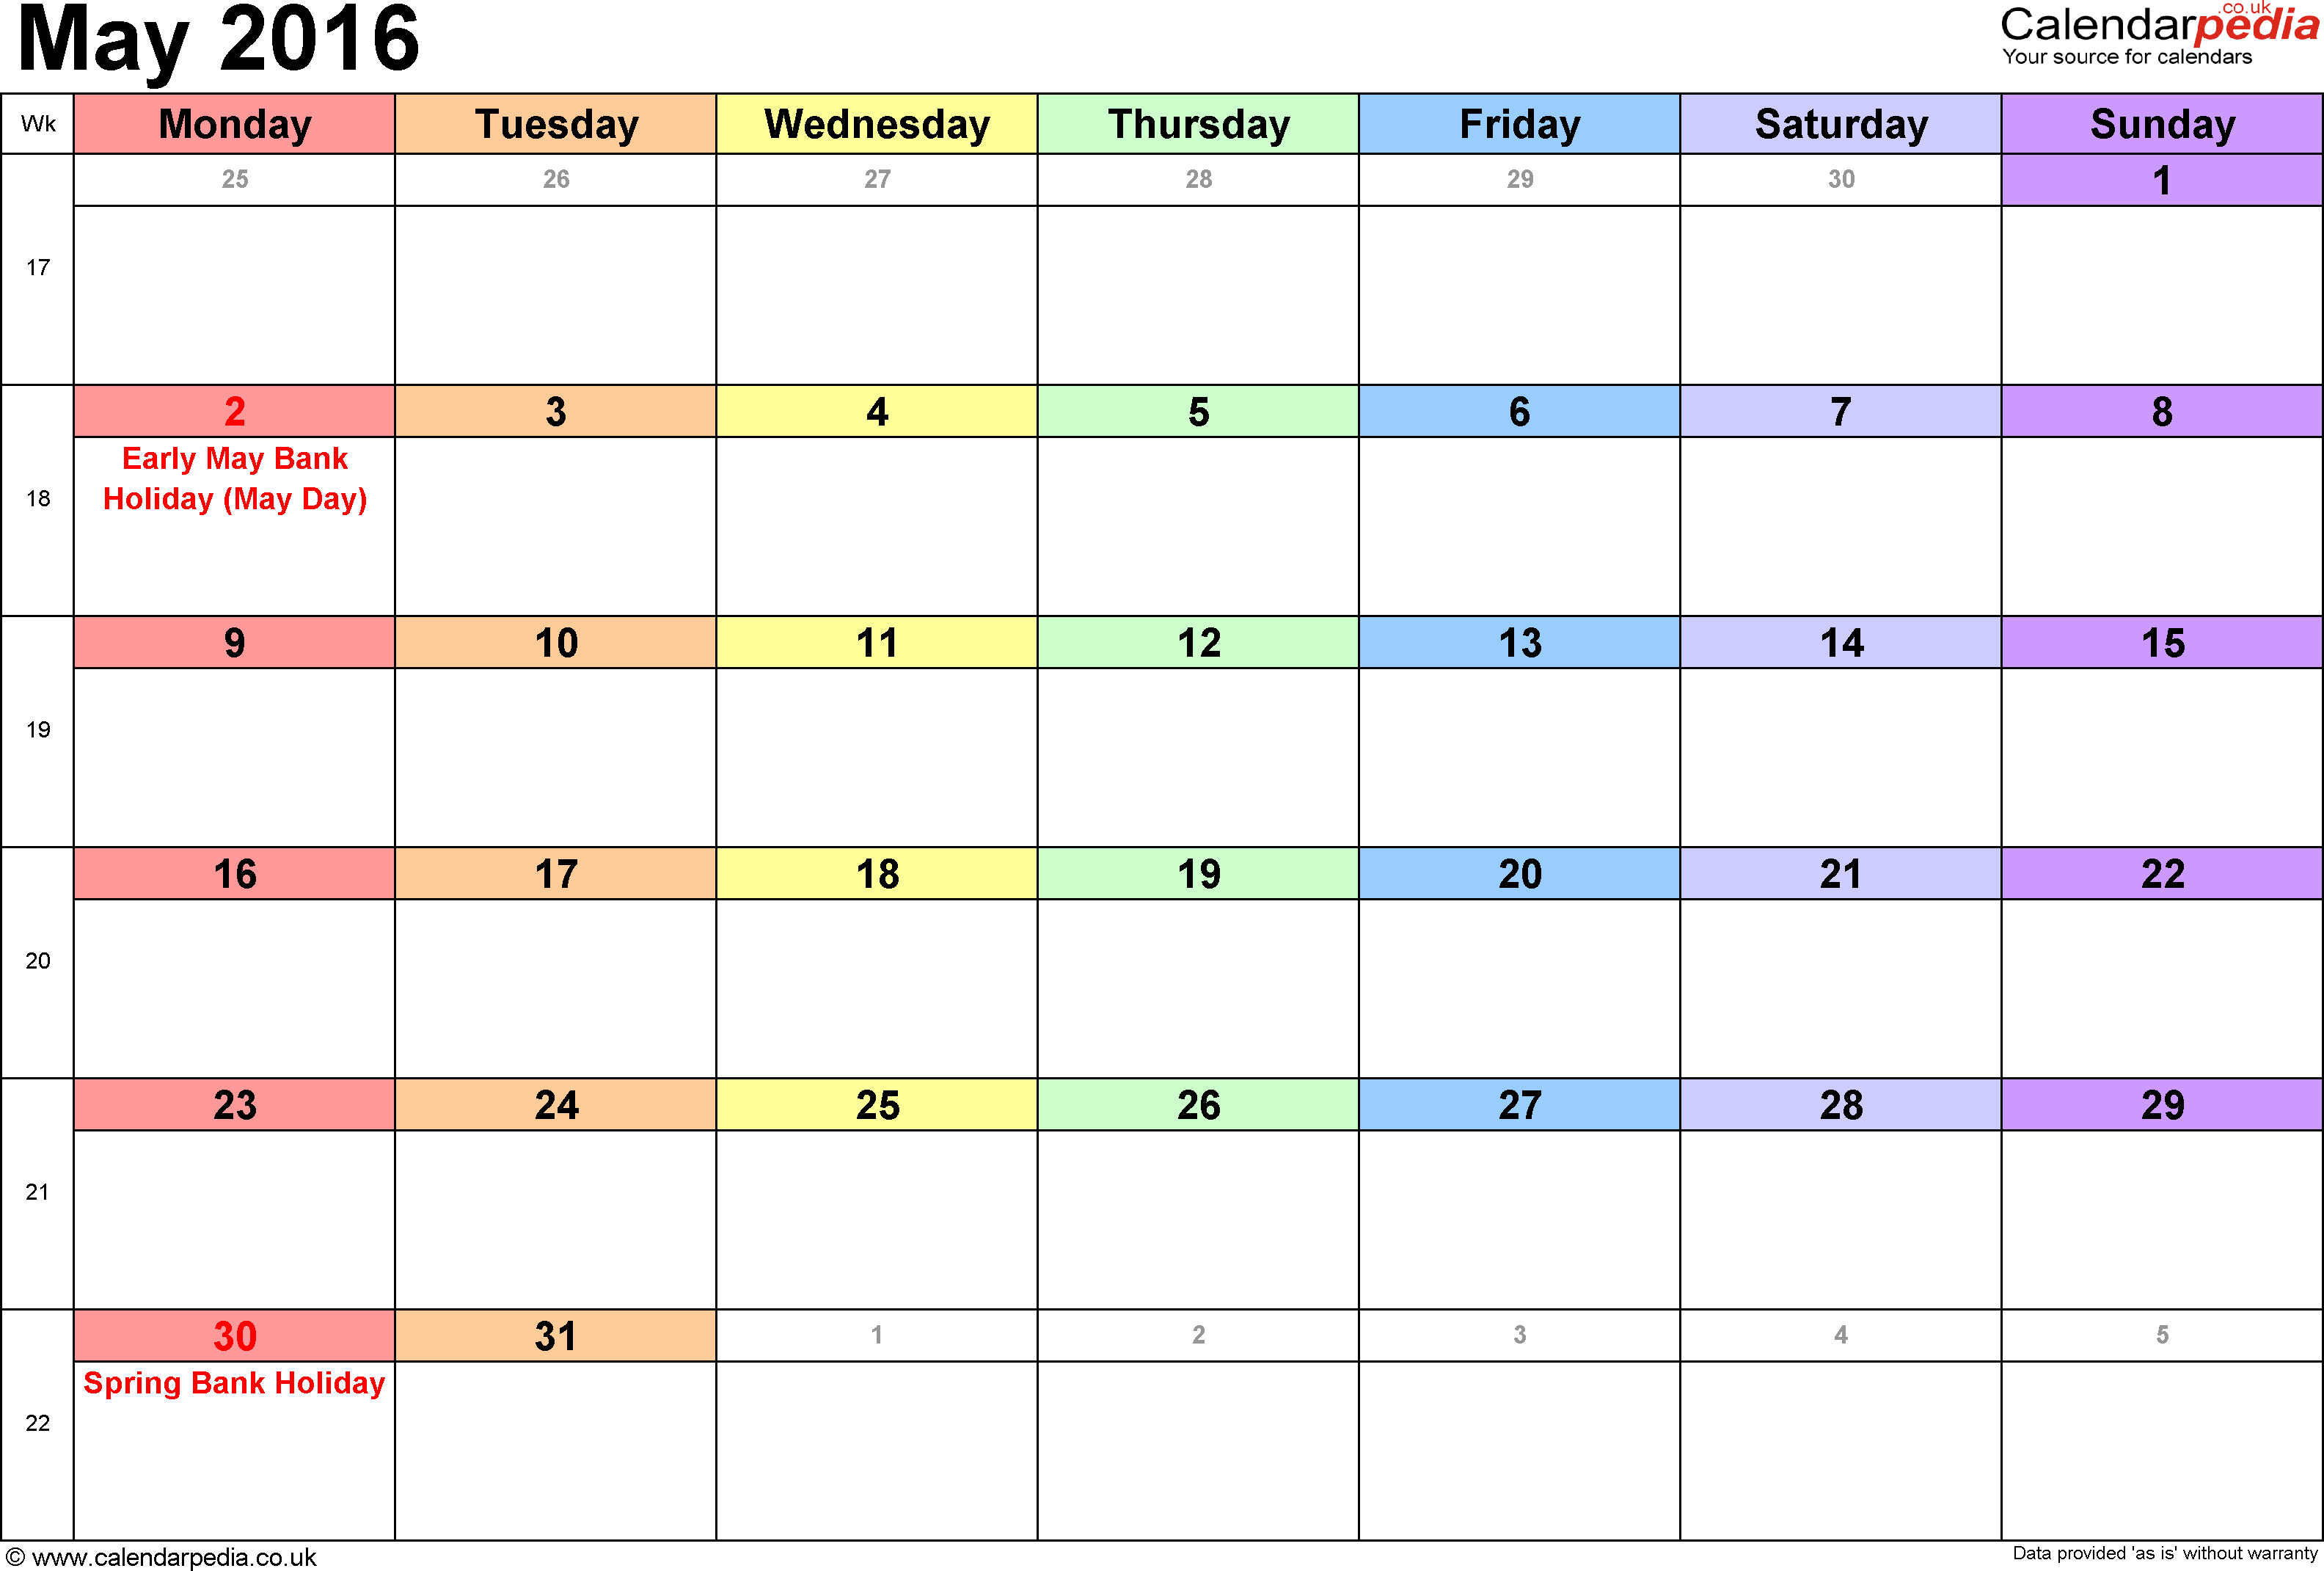 Calendar May 2016, landscape orientation, 1 page, with UK bank holidays and week numbers